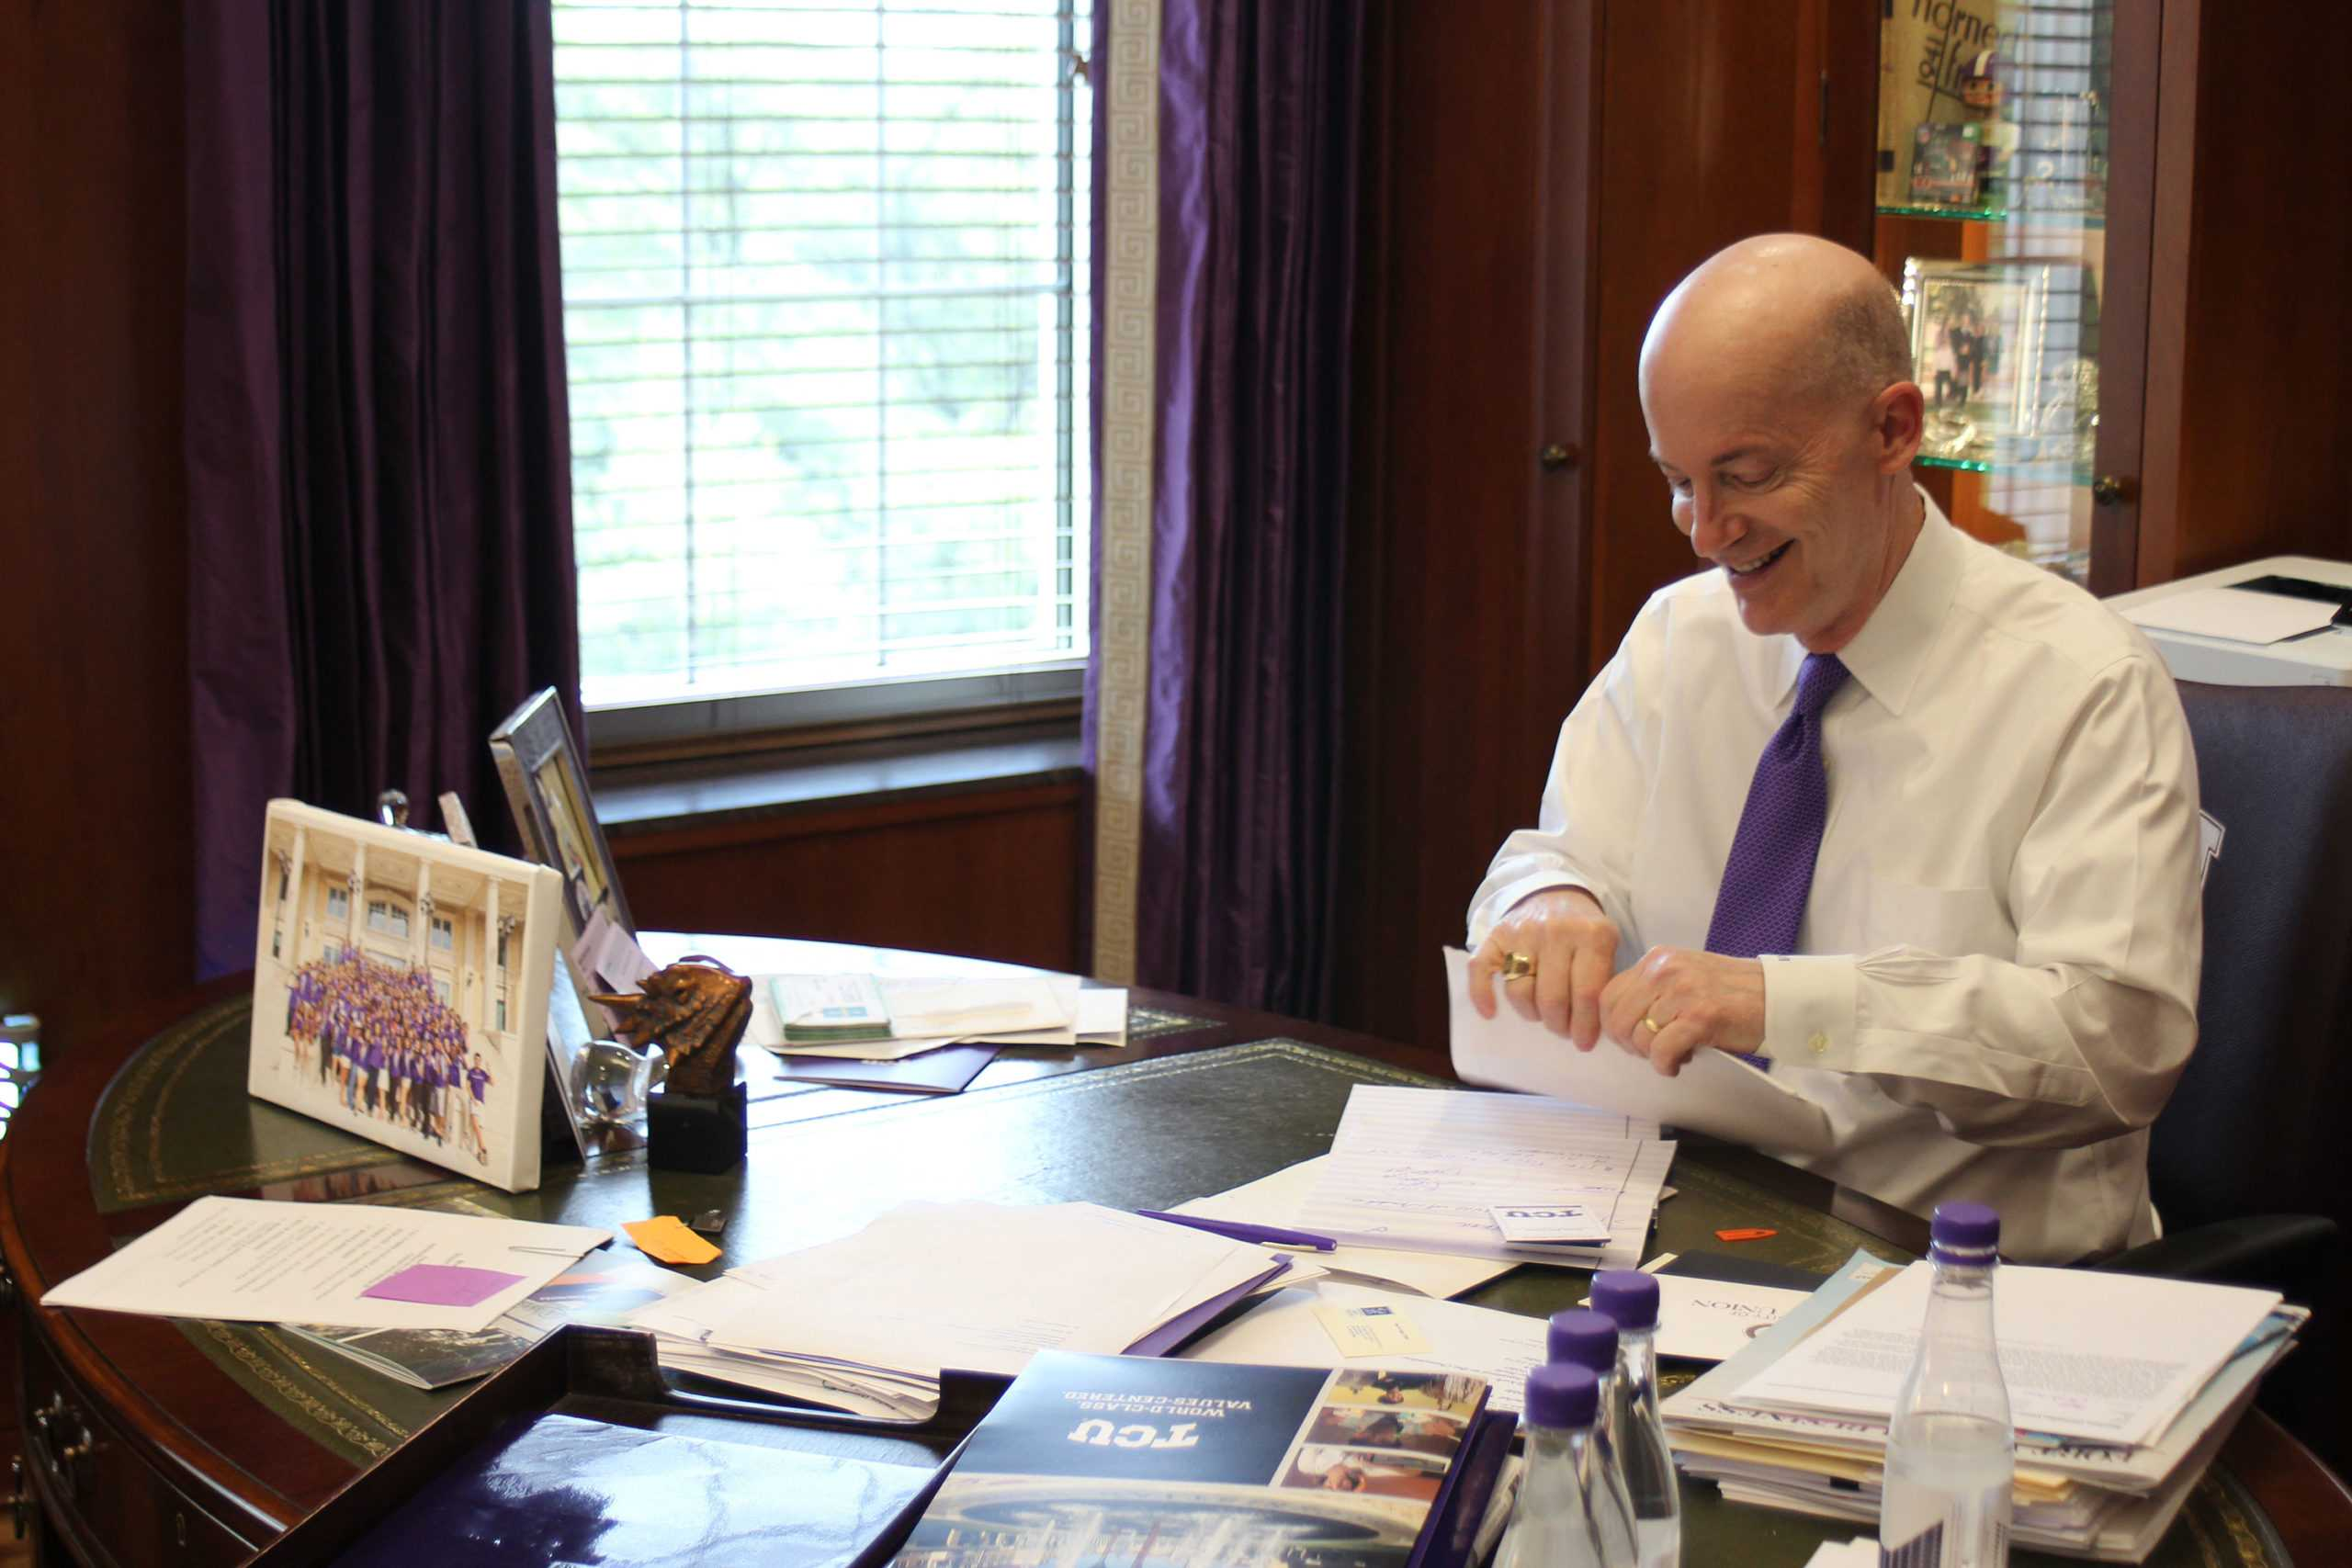 Chancellor Boschini is responsible for signing every graduating students' diploma.